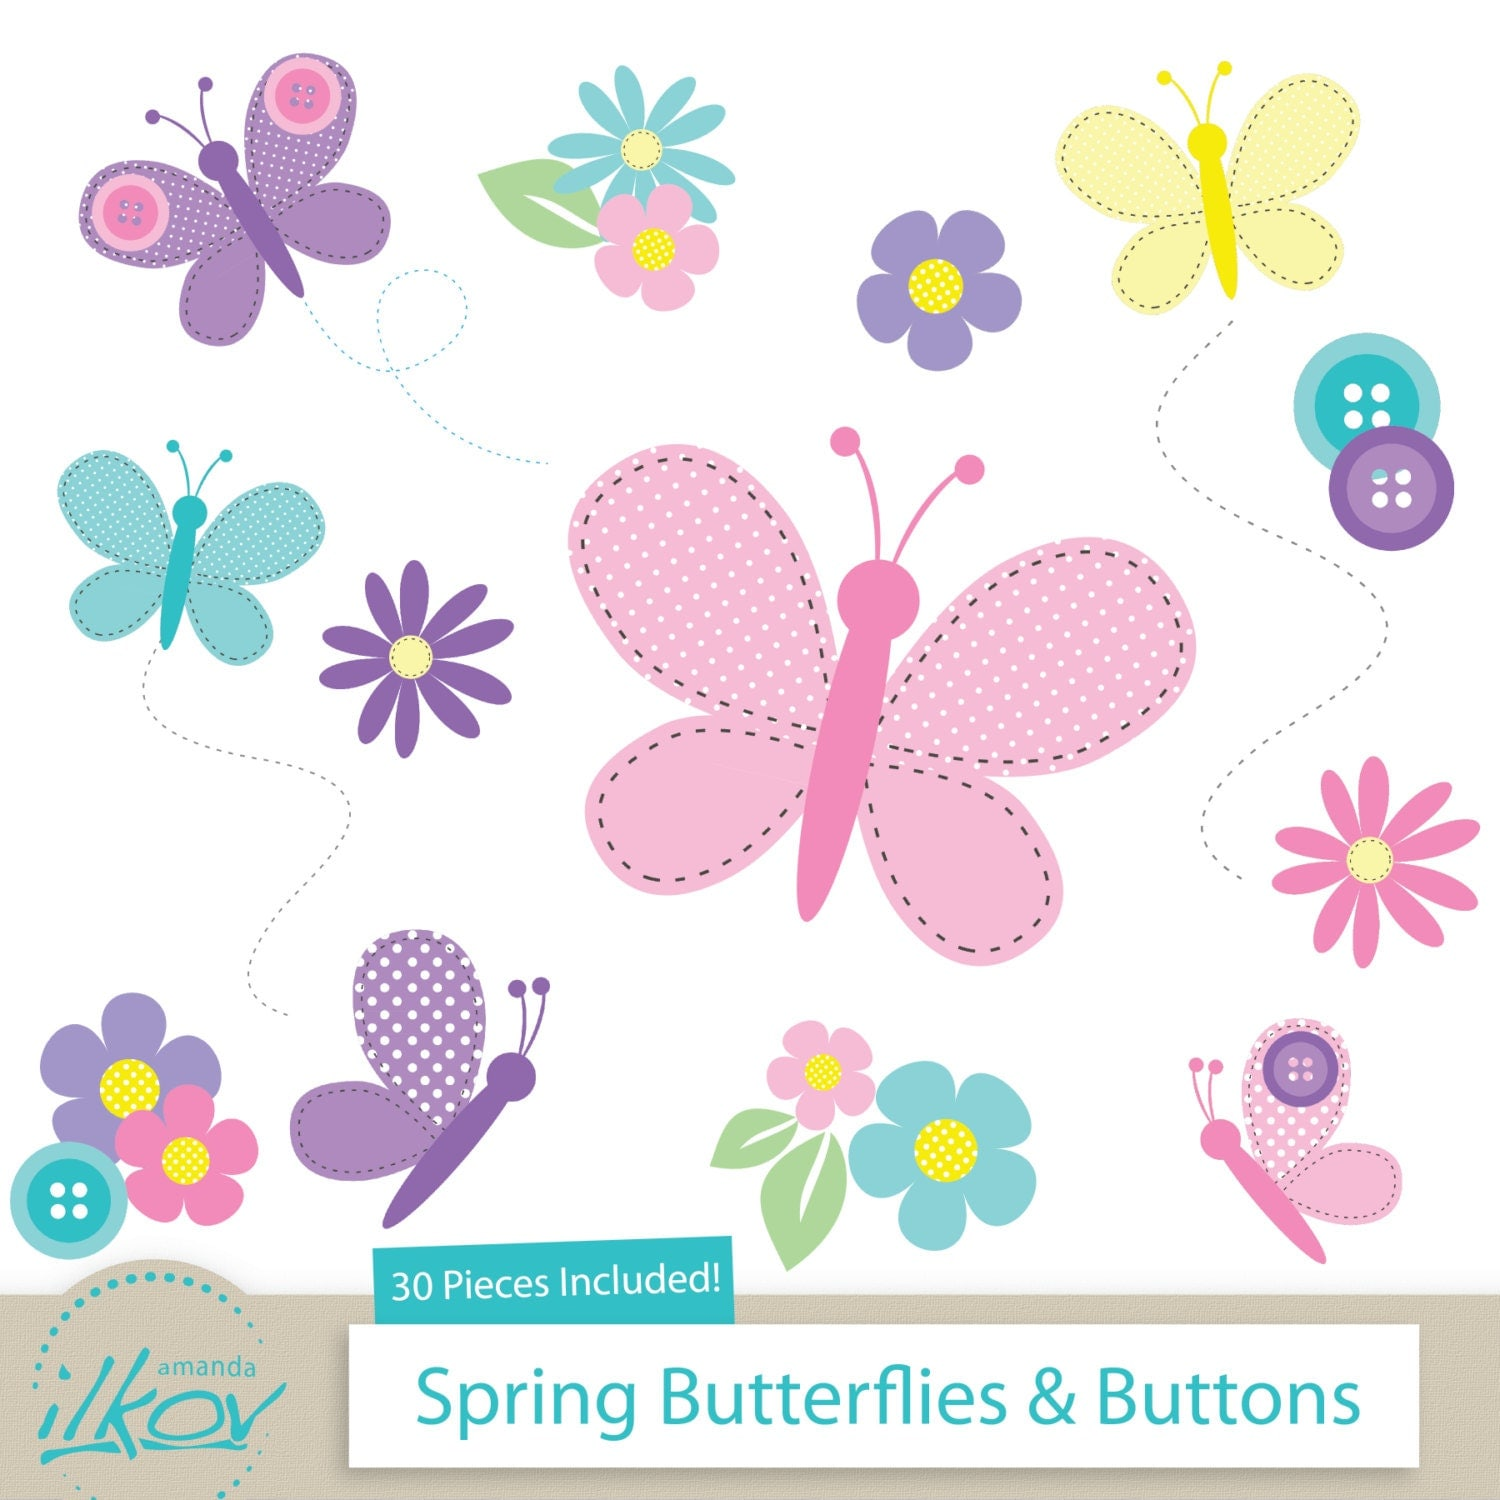 Spring Butterflies Amp Buttons Clipart For Digital Scrapbooking